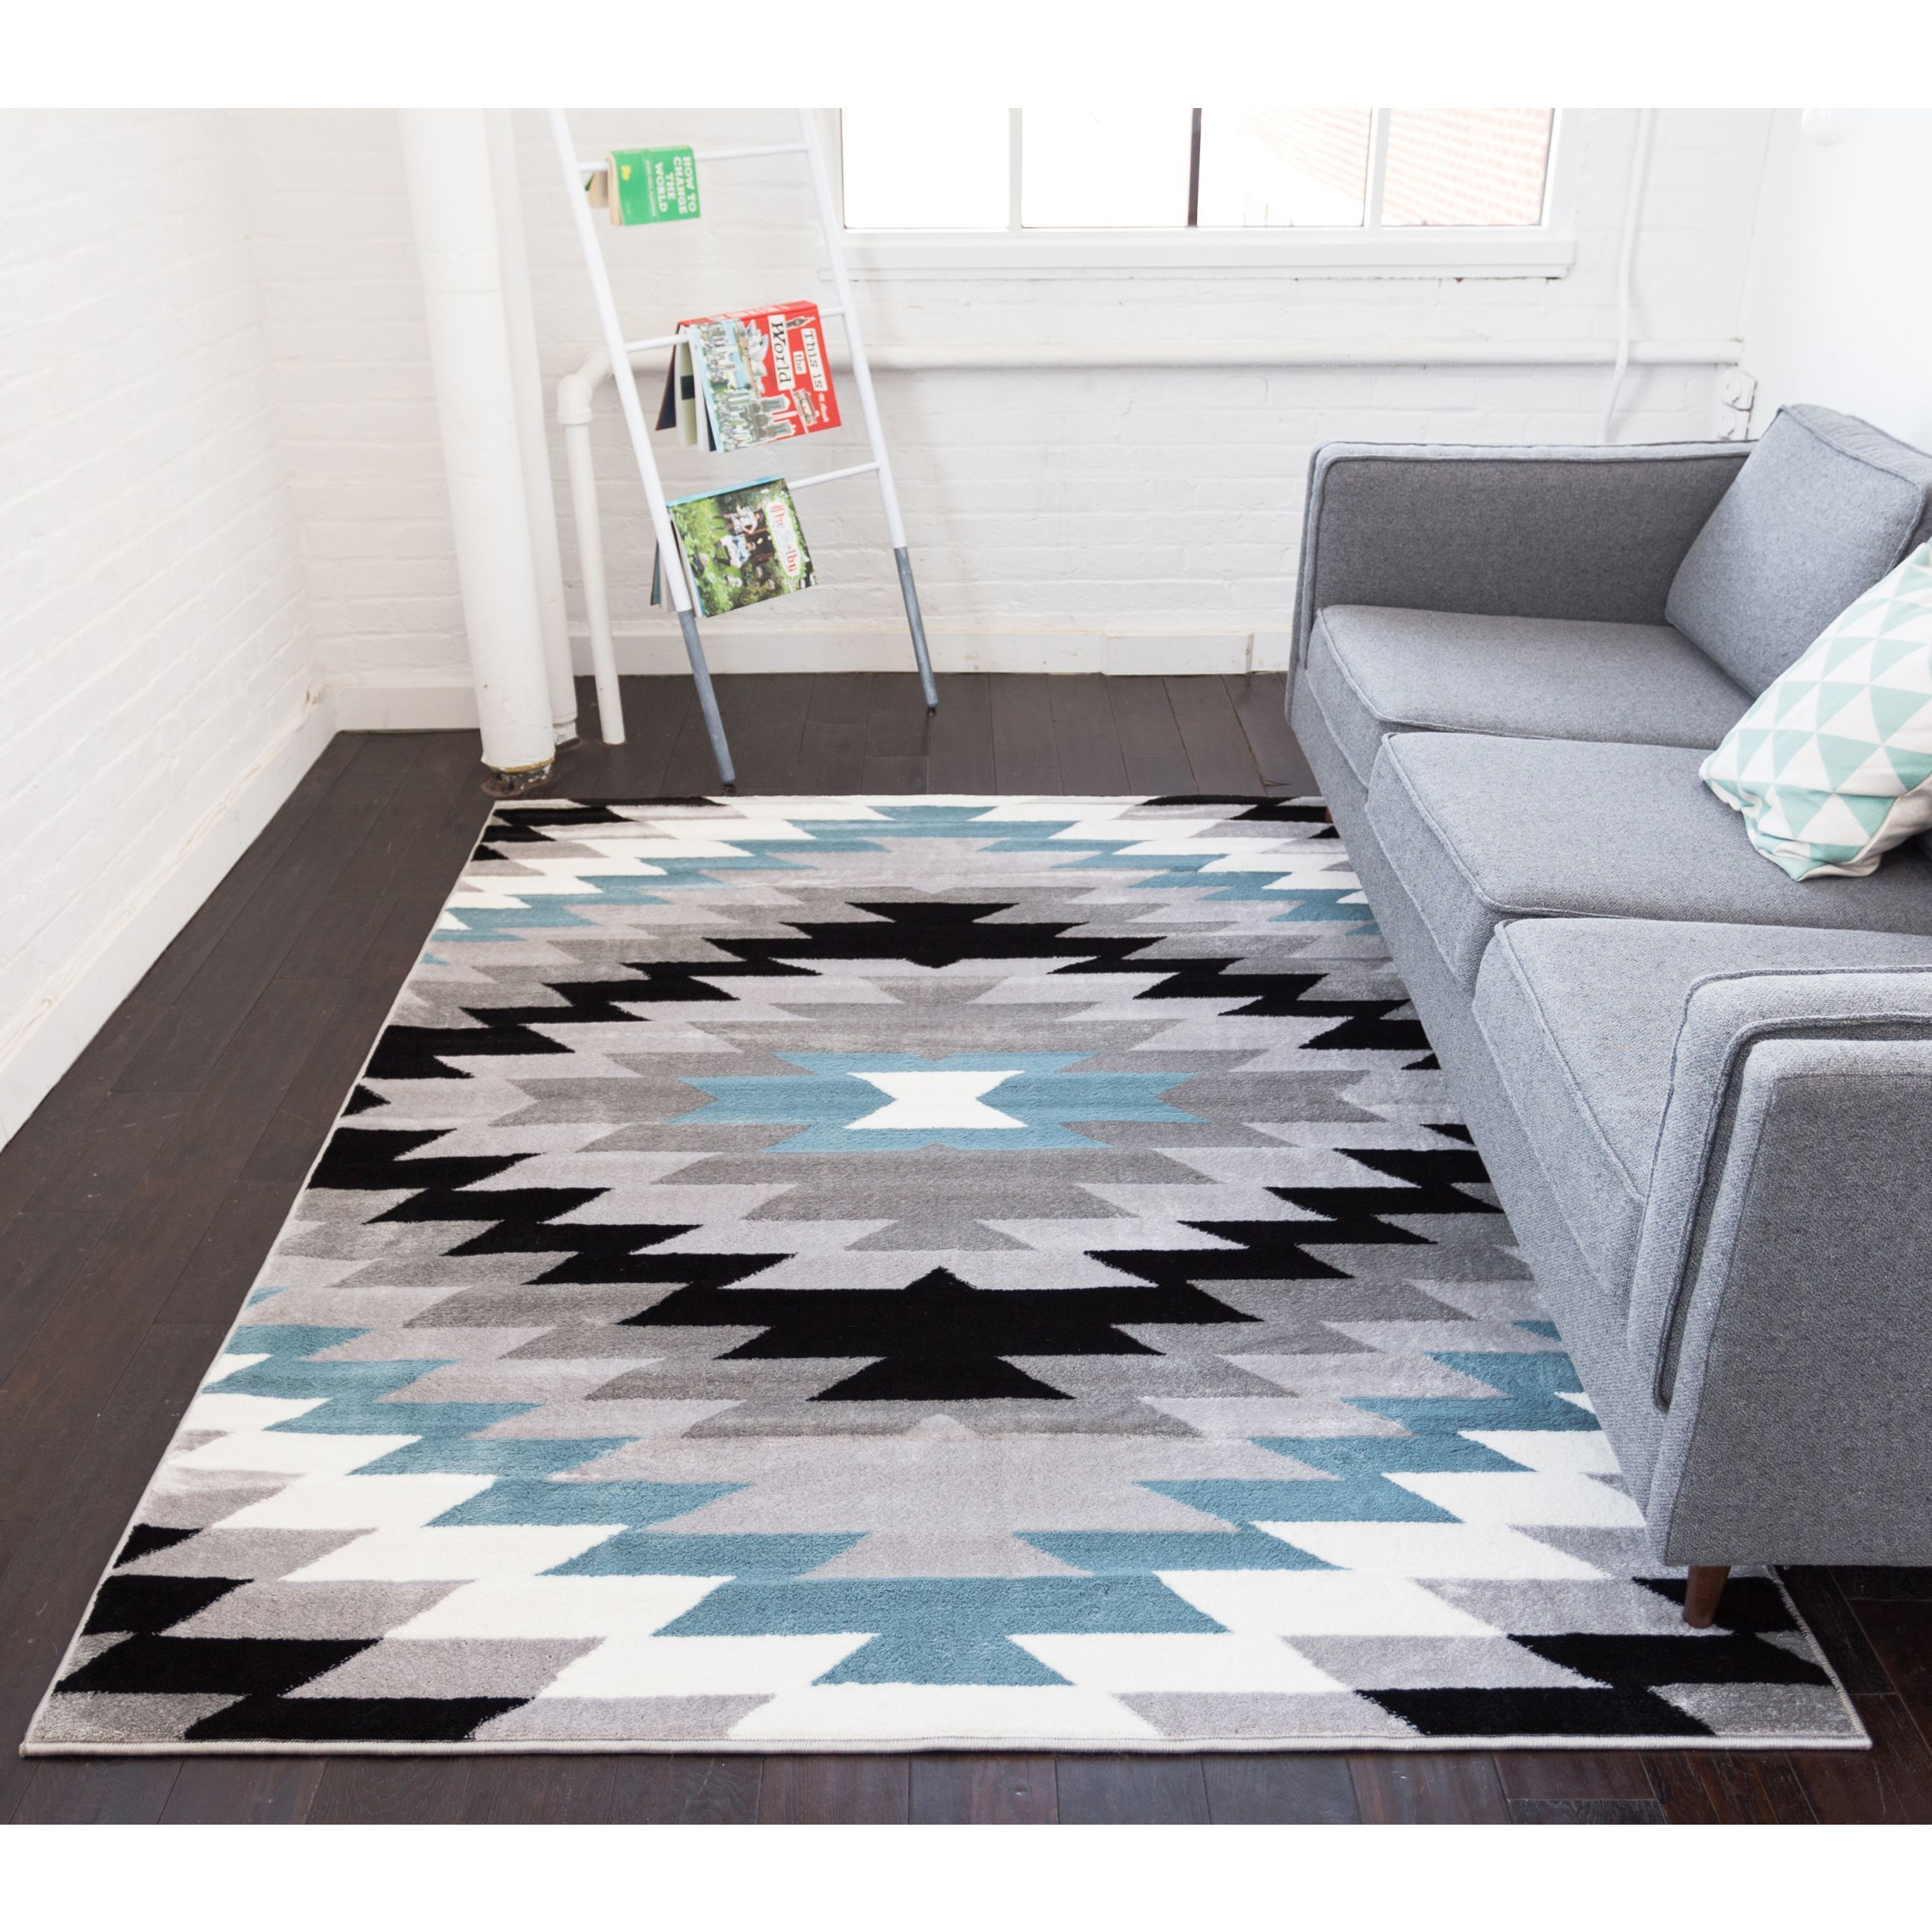 Shop well woven coconino grey modern southwestern tribal area rug 710 x 910 free shipping today overstock com 18515235